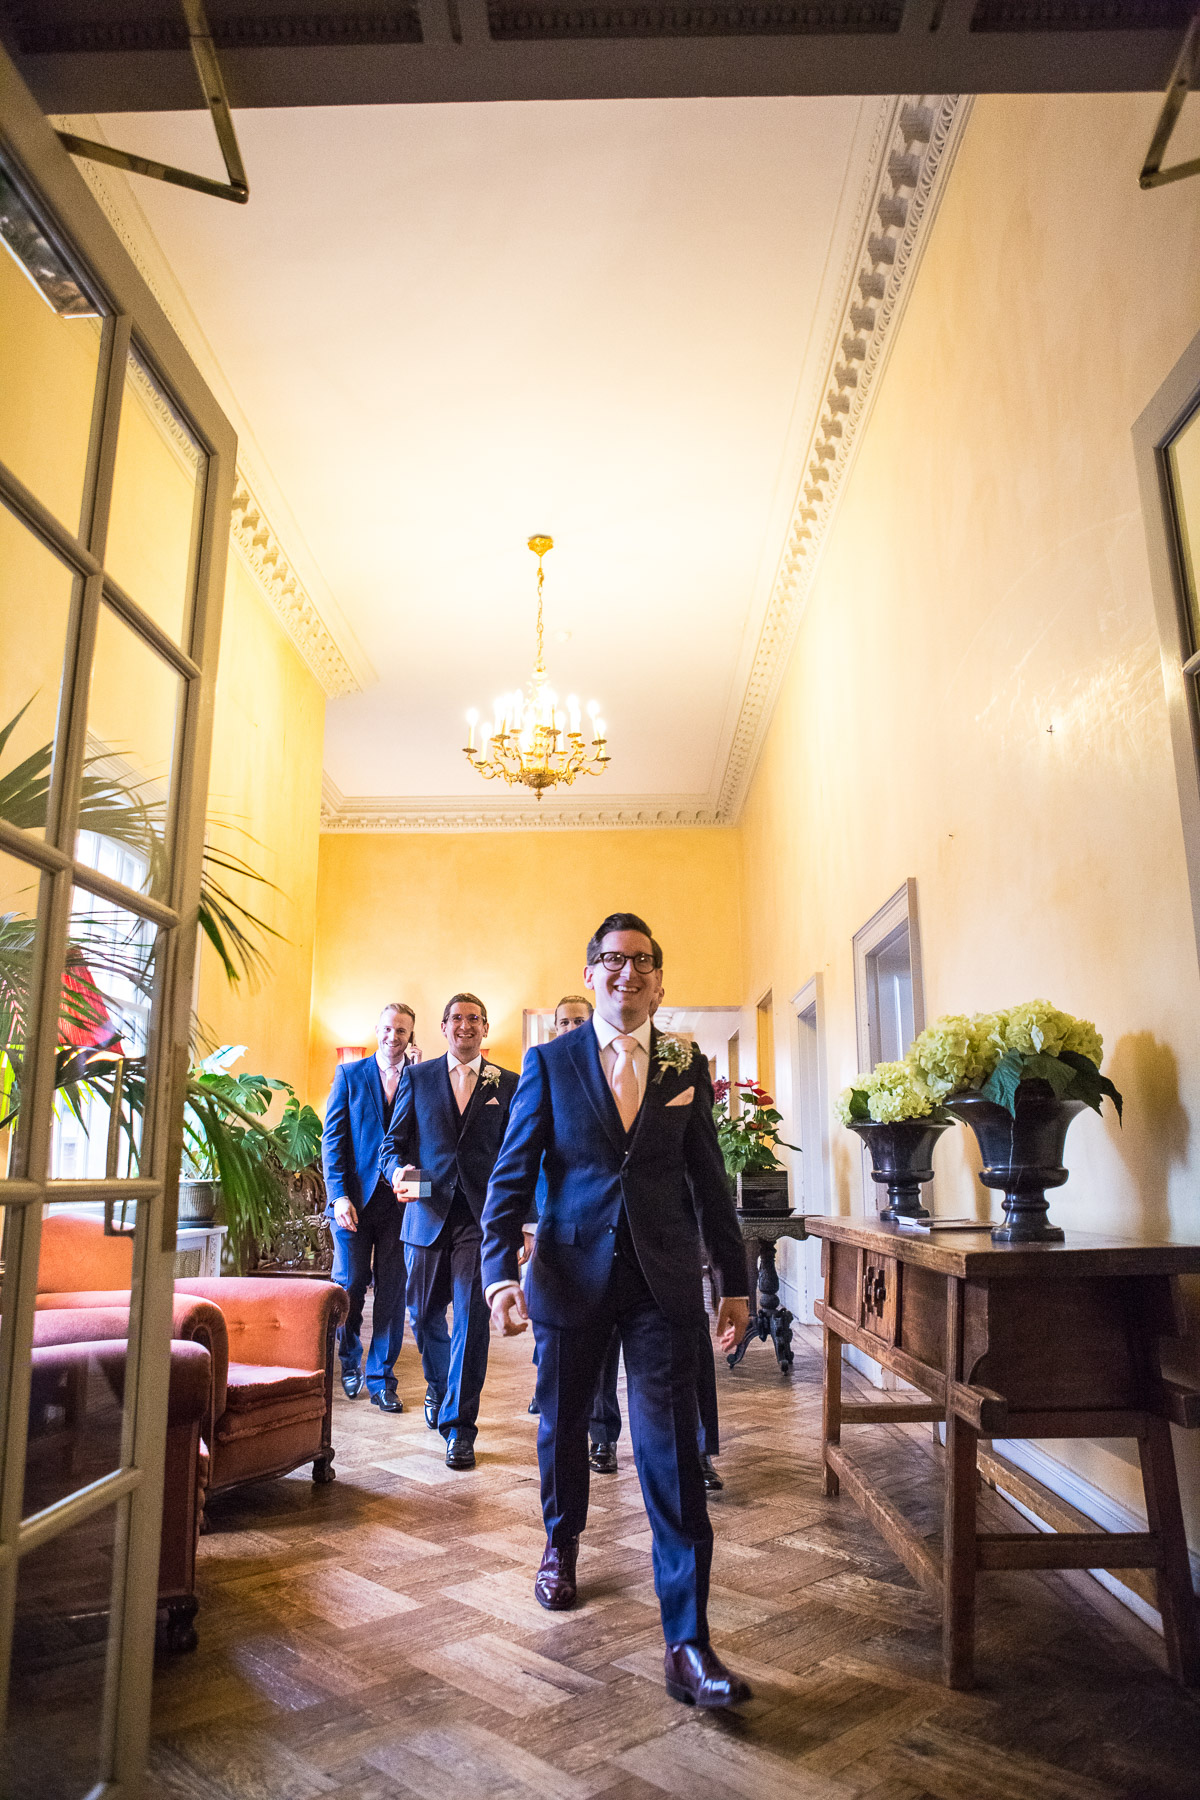 A Groom and his groomsmen walk along a corridor on the way to his wedding ceremony